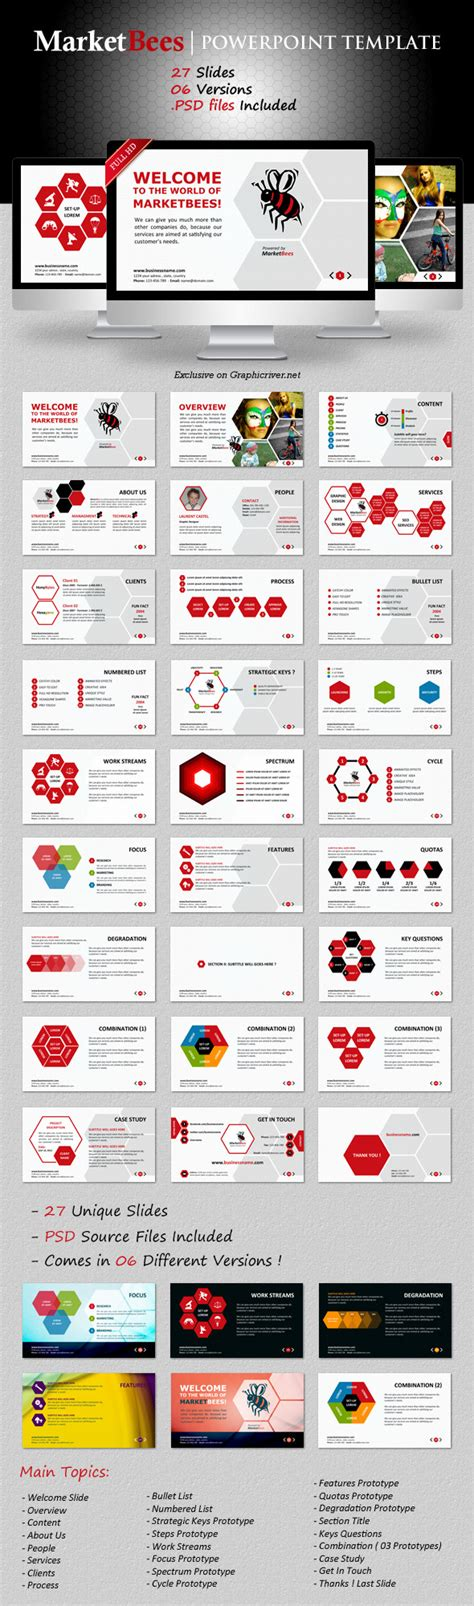 Best Rated Powerpoint Infographic Template In 2014 Powerpoint Template Size 2014